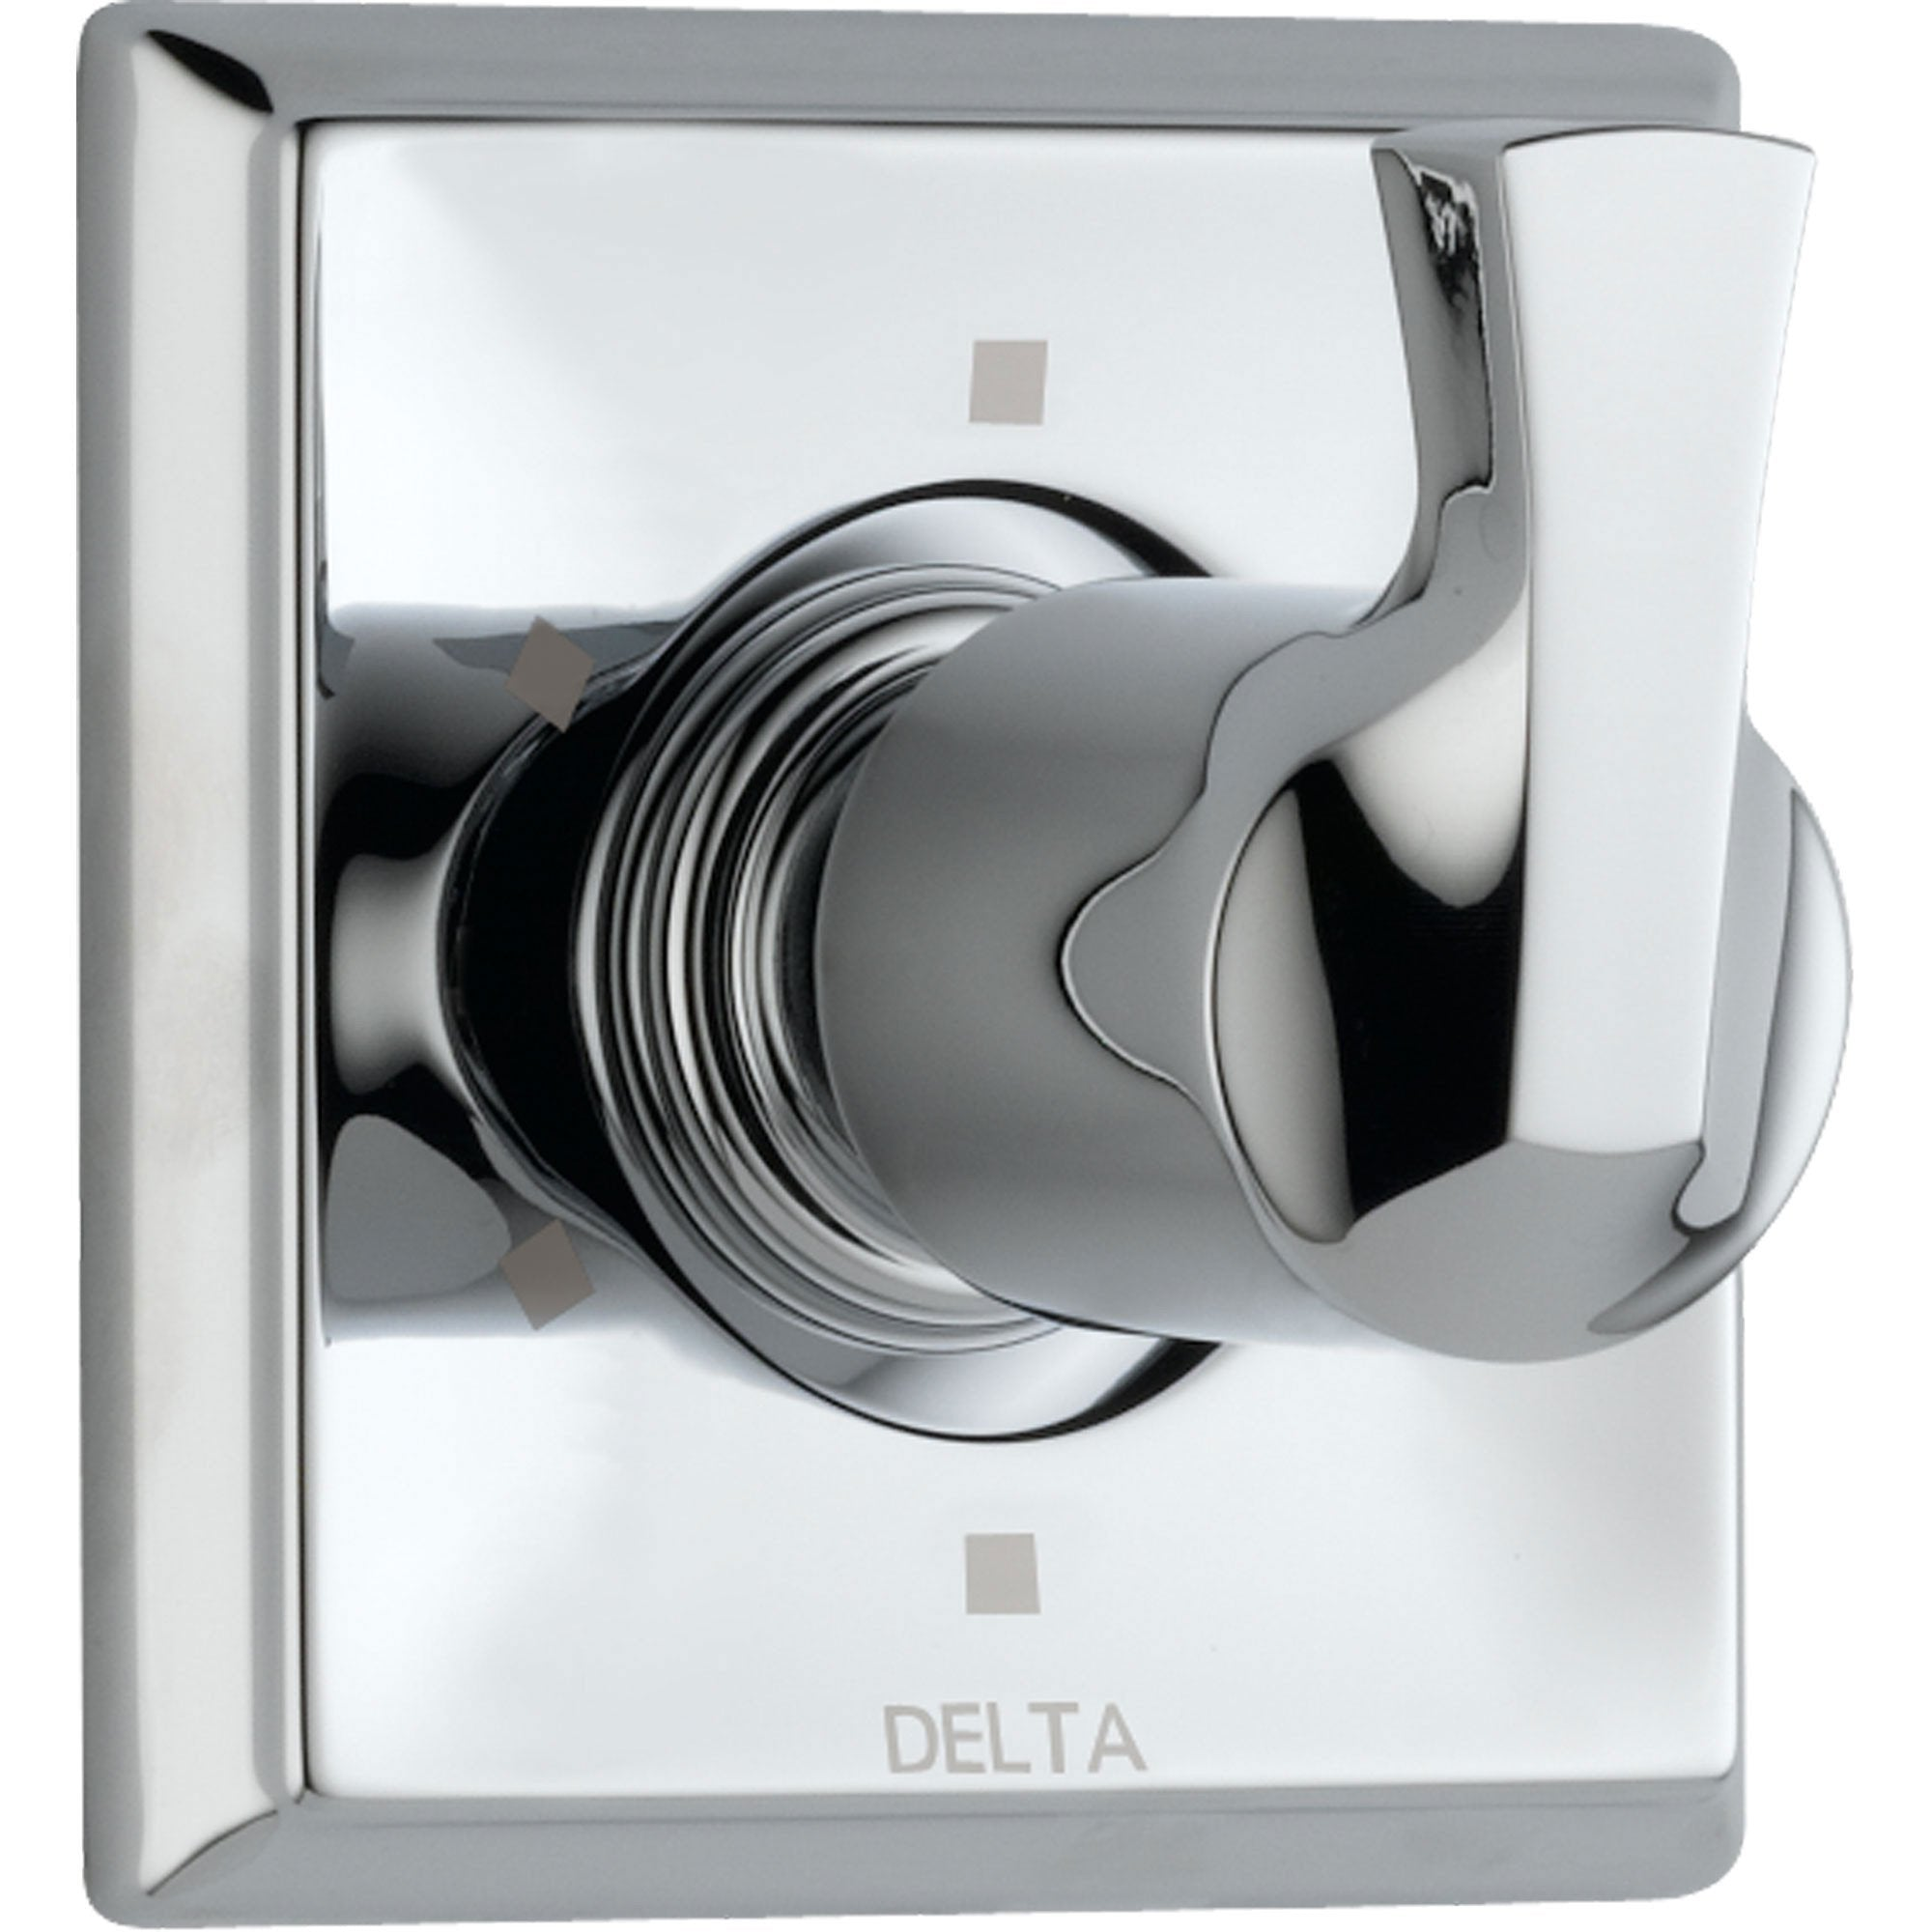 Delta Dryden Chrome Finish 6 Setting 3-Port Shower Diverter Fixture with Single Lever Handle INCLUDES Rough-in Valve D1326V